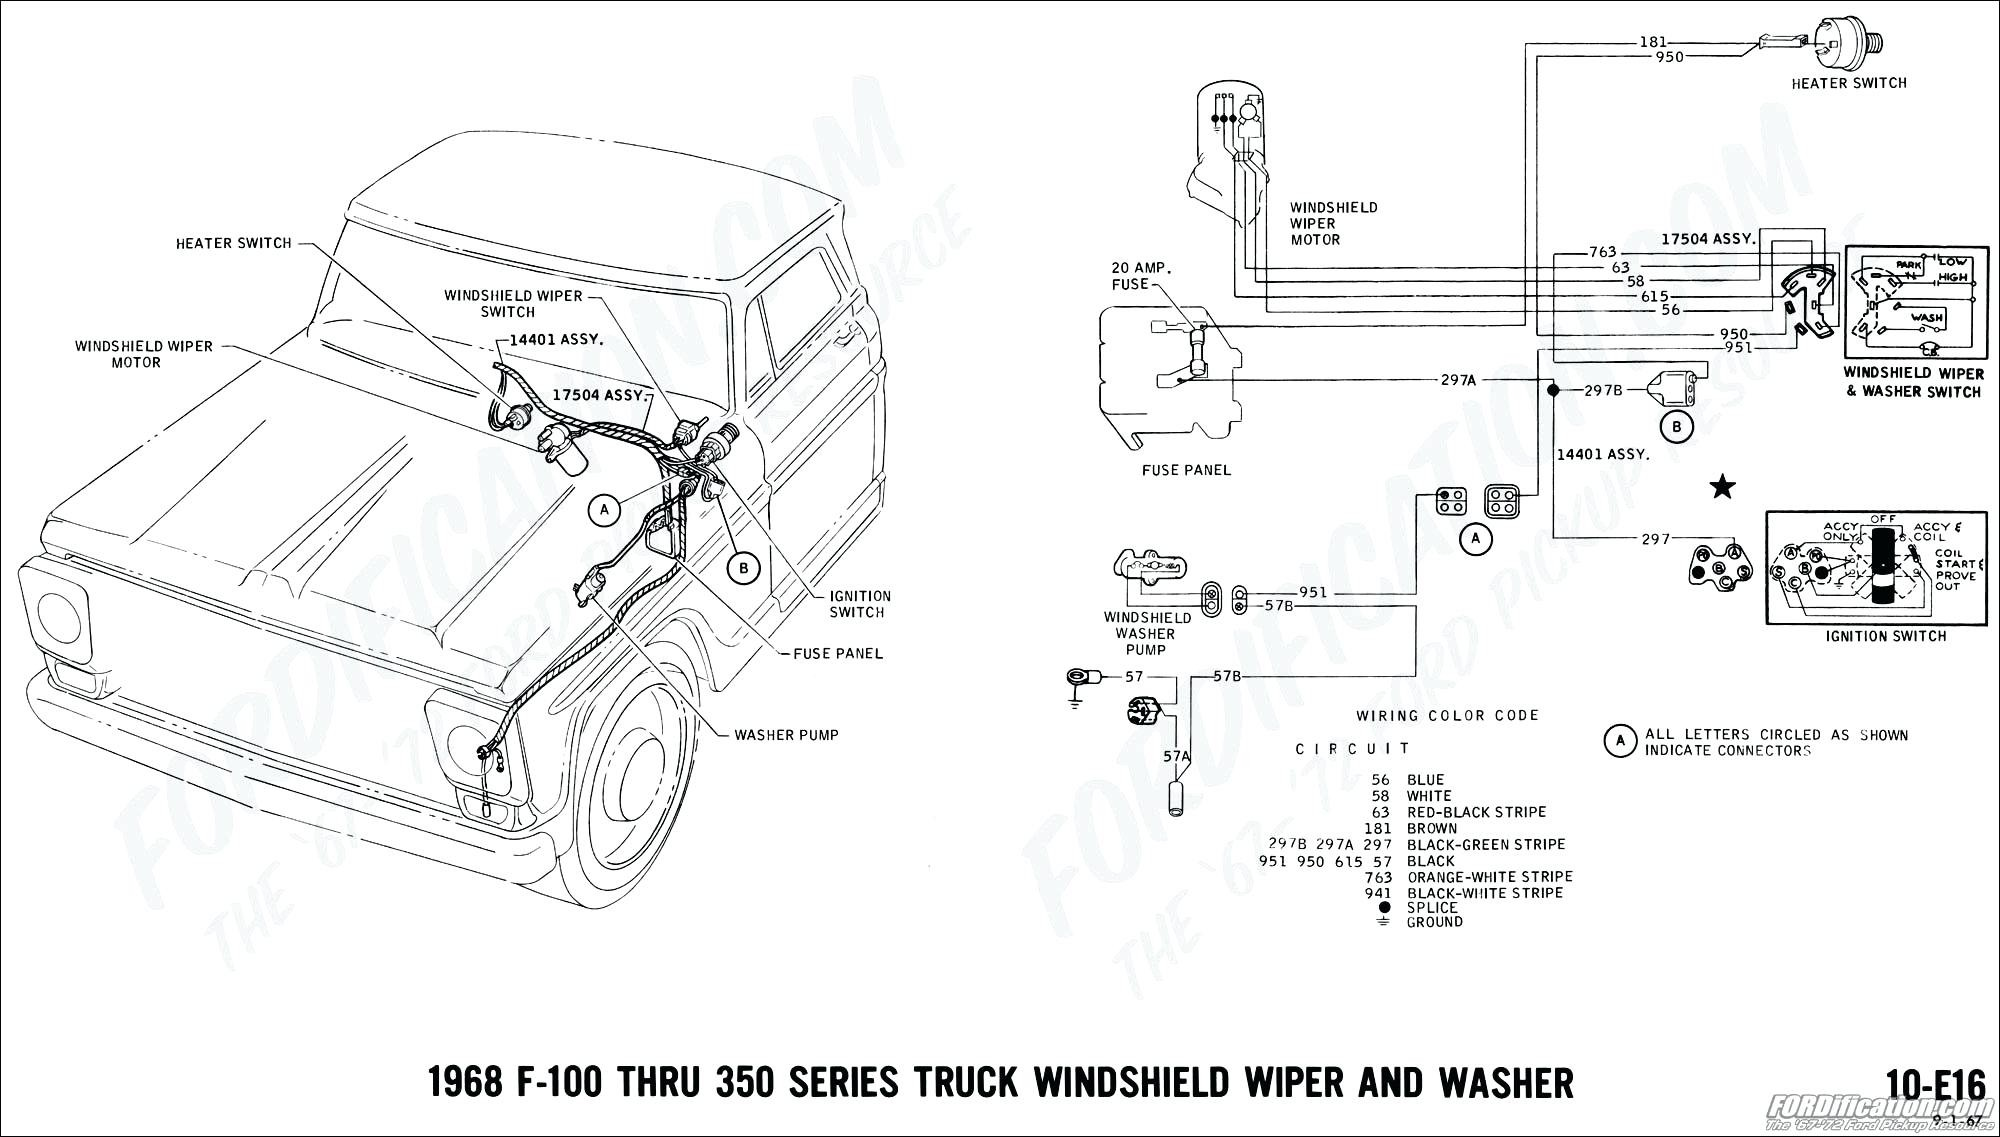 1986 Toyota Pickup Wiring Diagram Stereo Pin Assignment Main